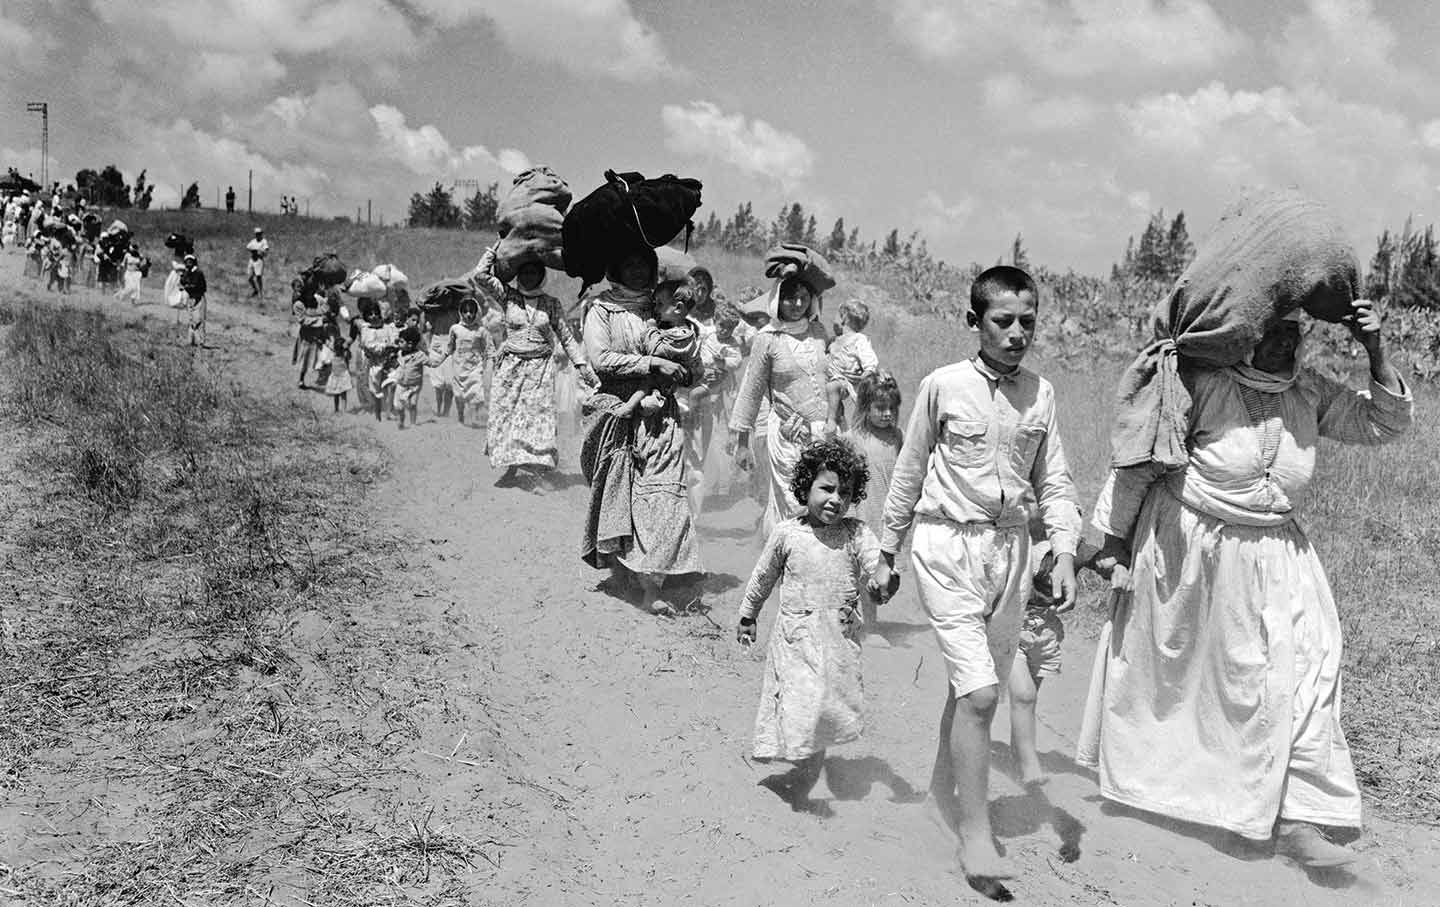 A Century of Struggle in Palestine